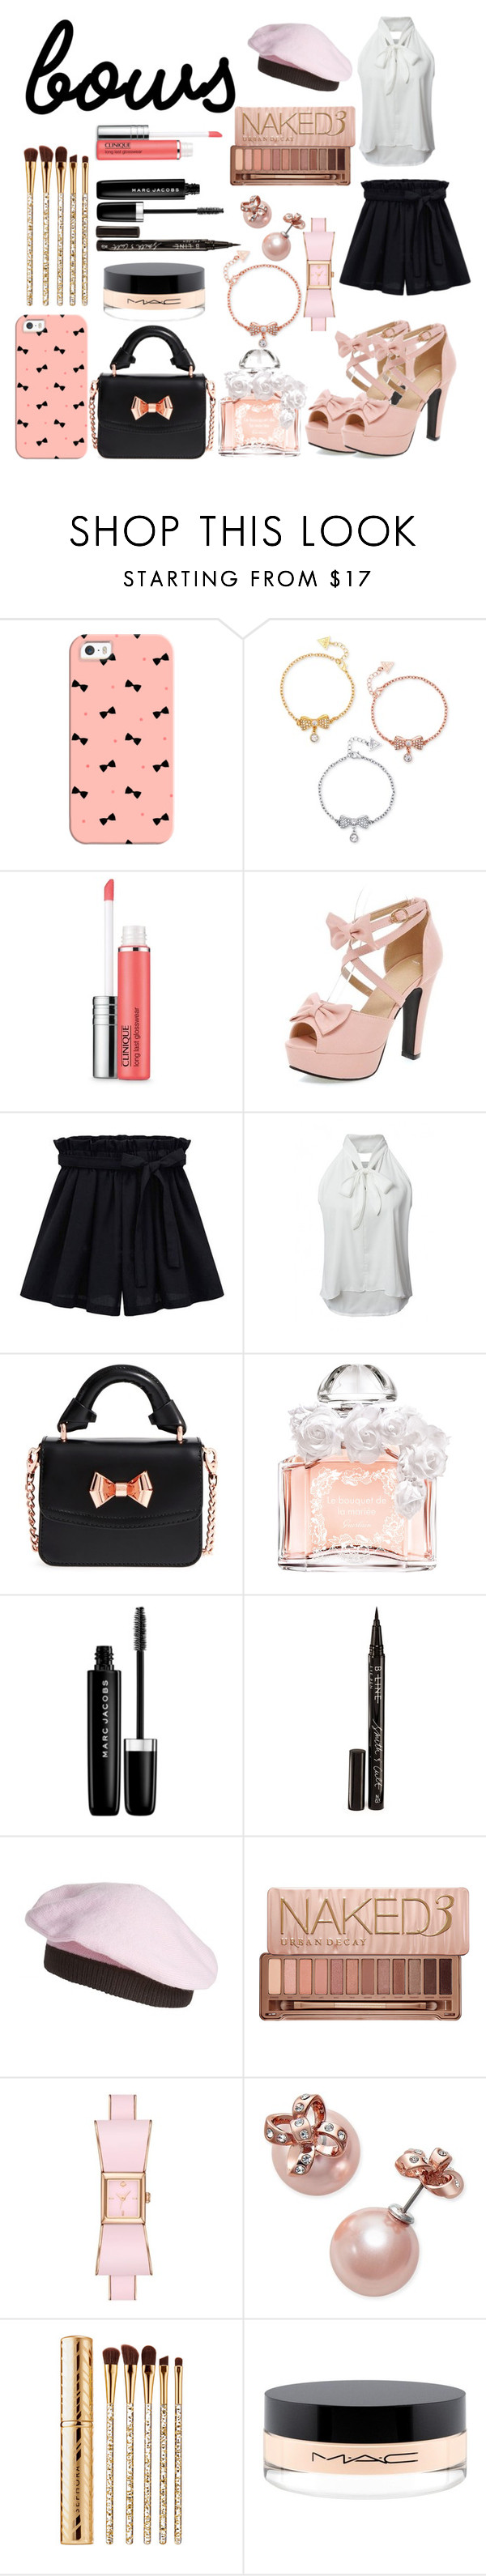 """""""Bows Style"""" by alita210100 on Polyvore featuring moda, Casetify, GUESS, Clinique, WithChic, Ted Baker, Guerlain, Marc Jacobs, Smith & Cult y Kate Spade"""